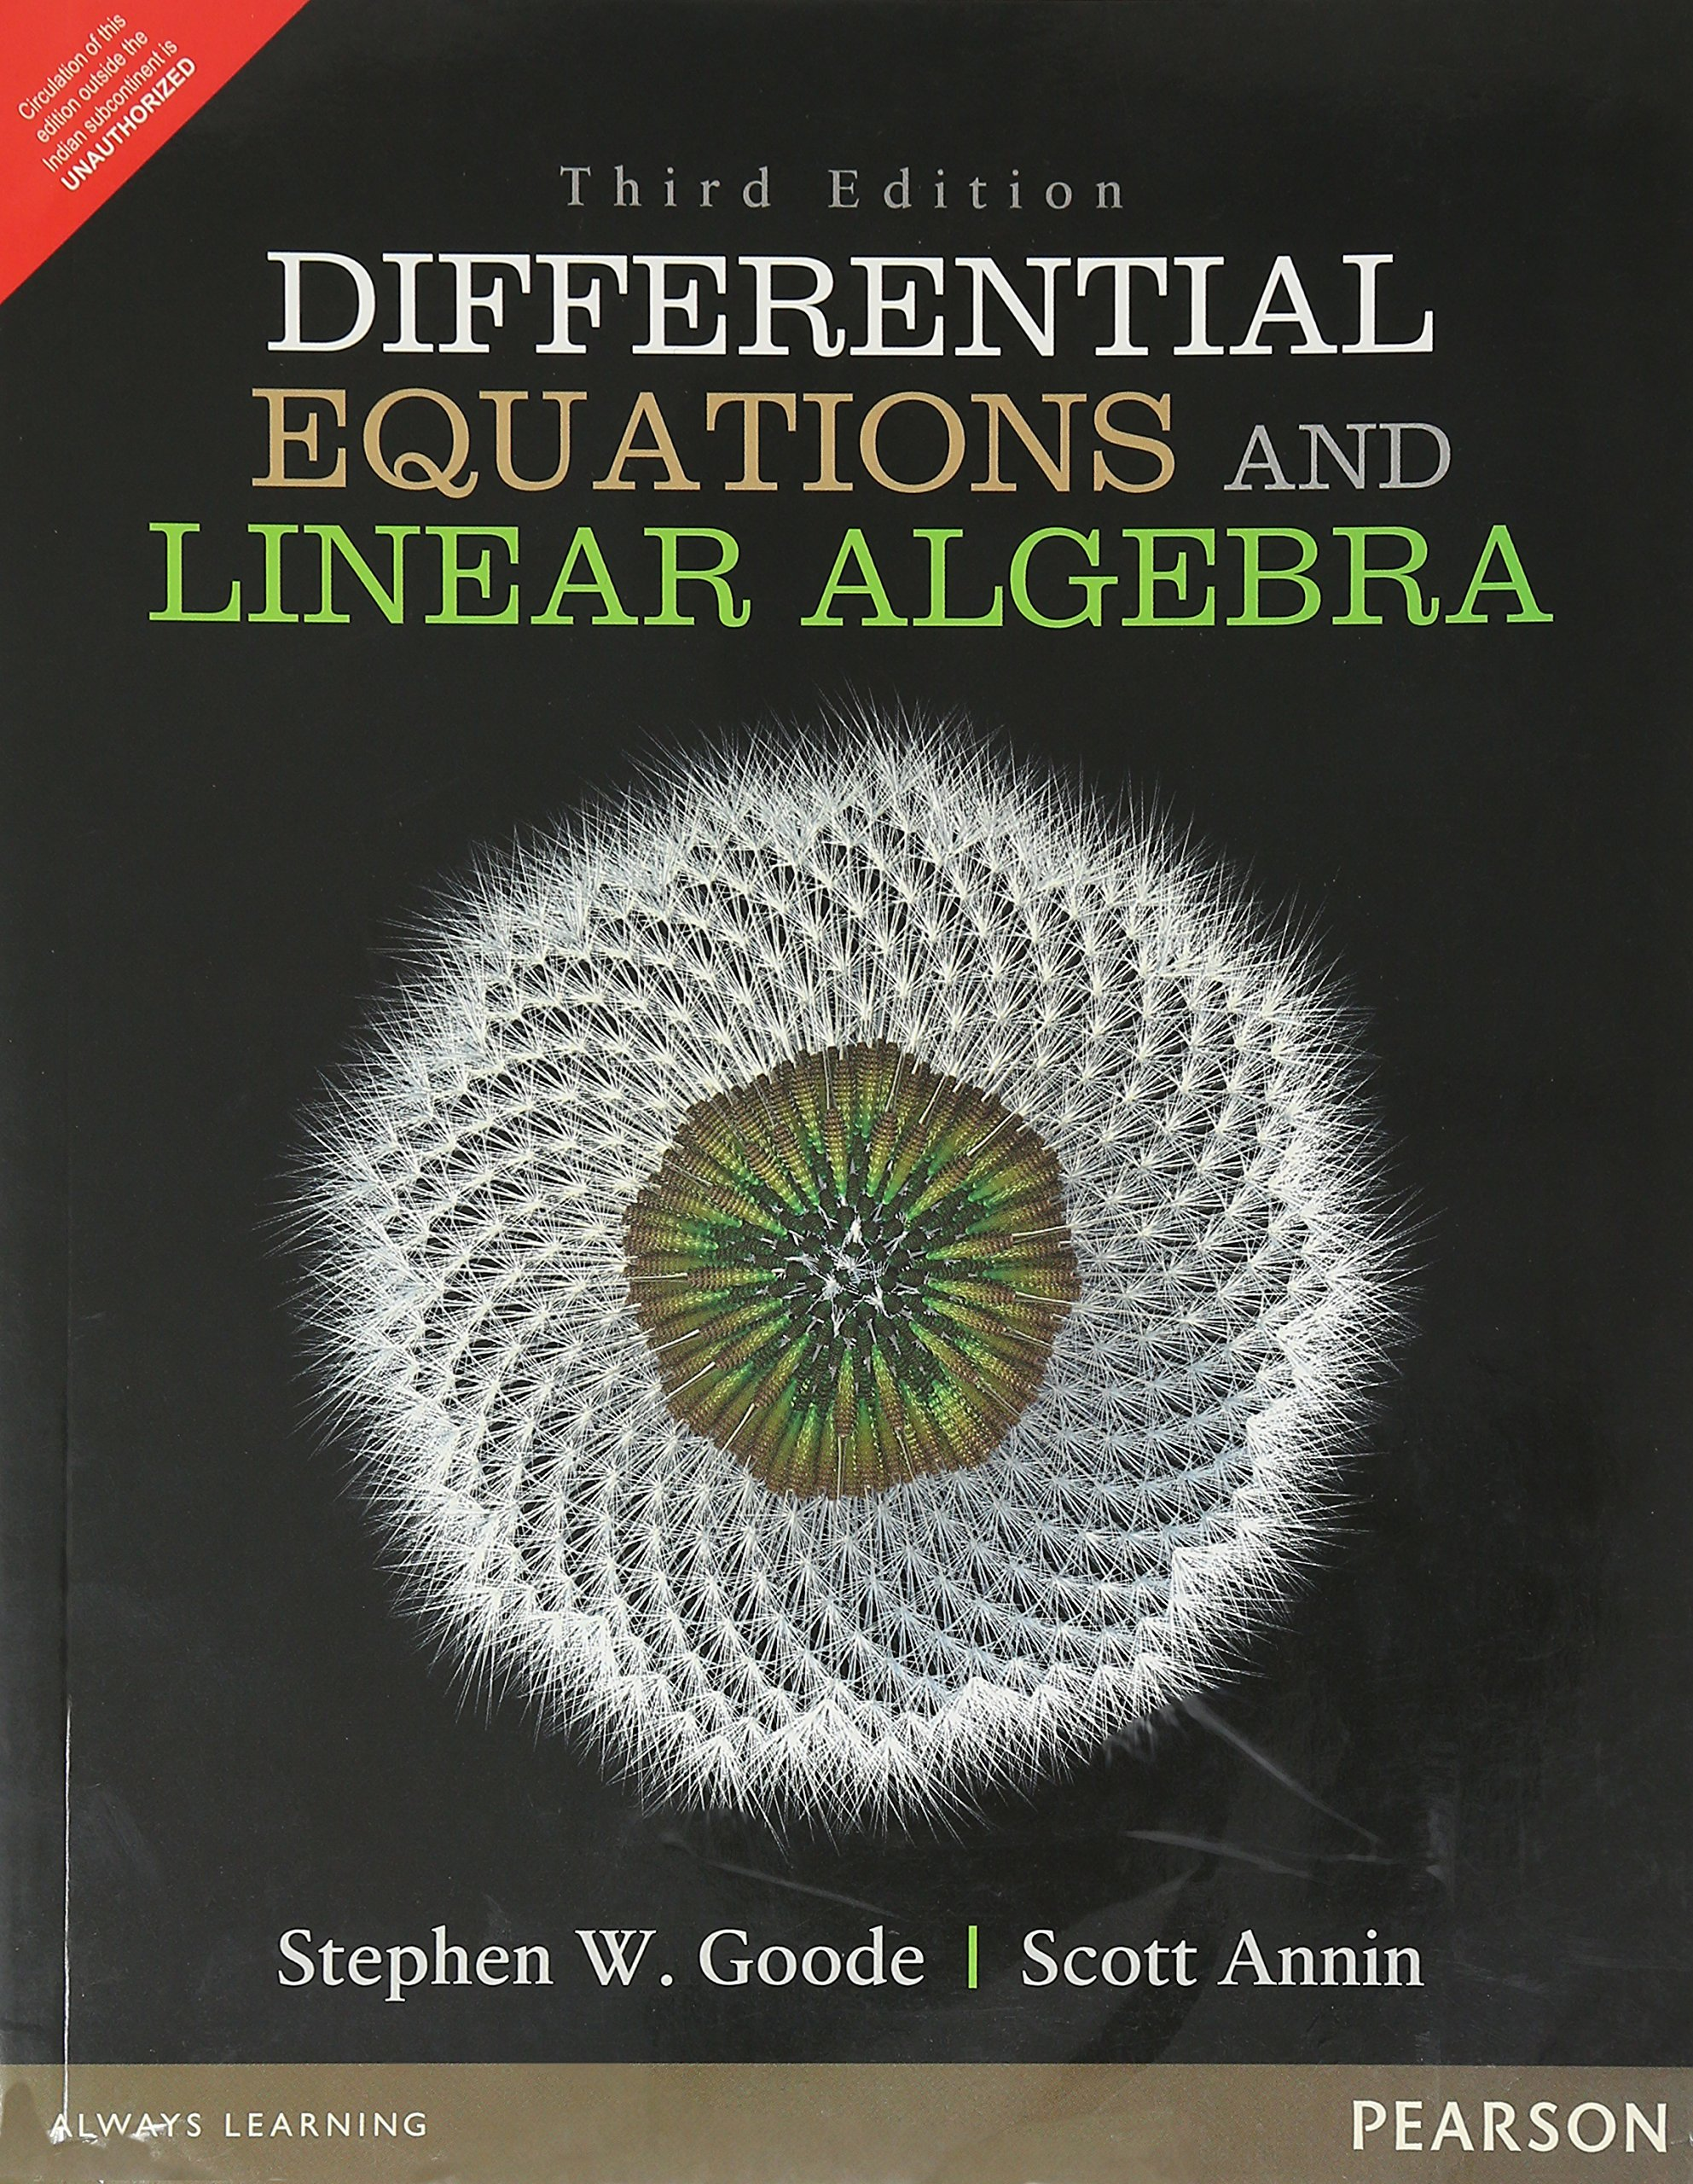 Differential Equations And Linear Algebra, 3 Ed: Stephen Walther:  9789332571631: Amazon.com: Books